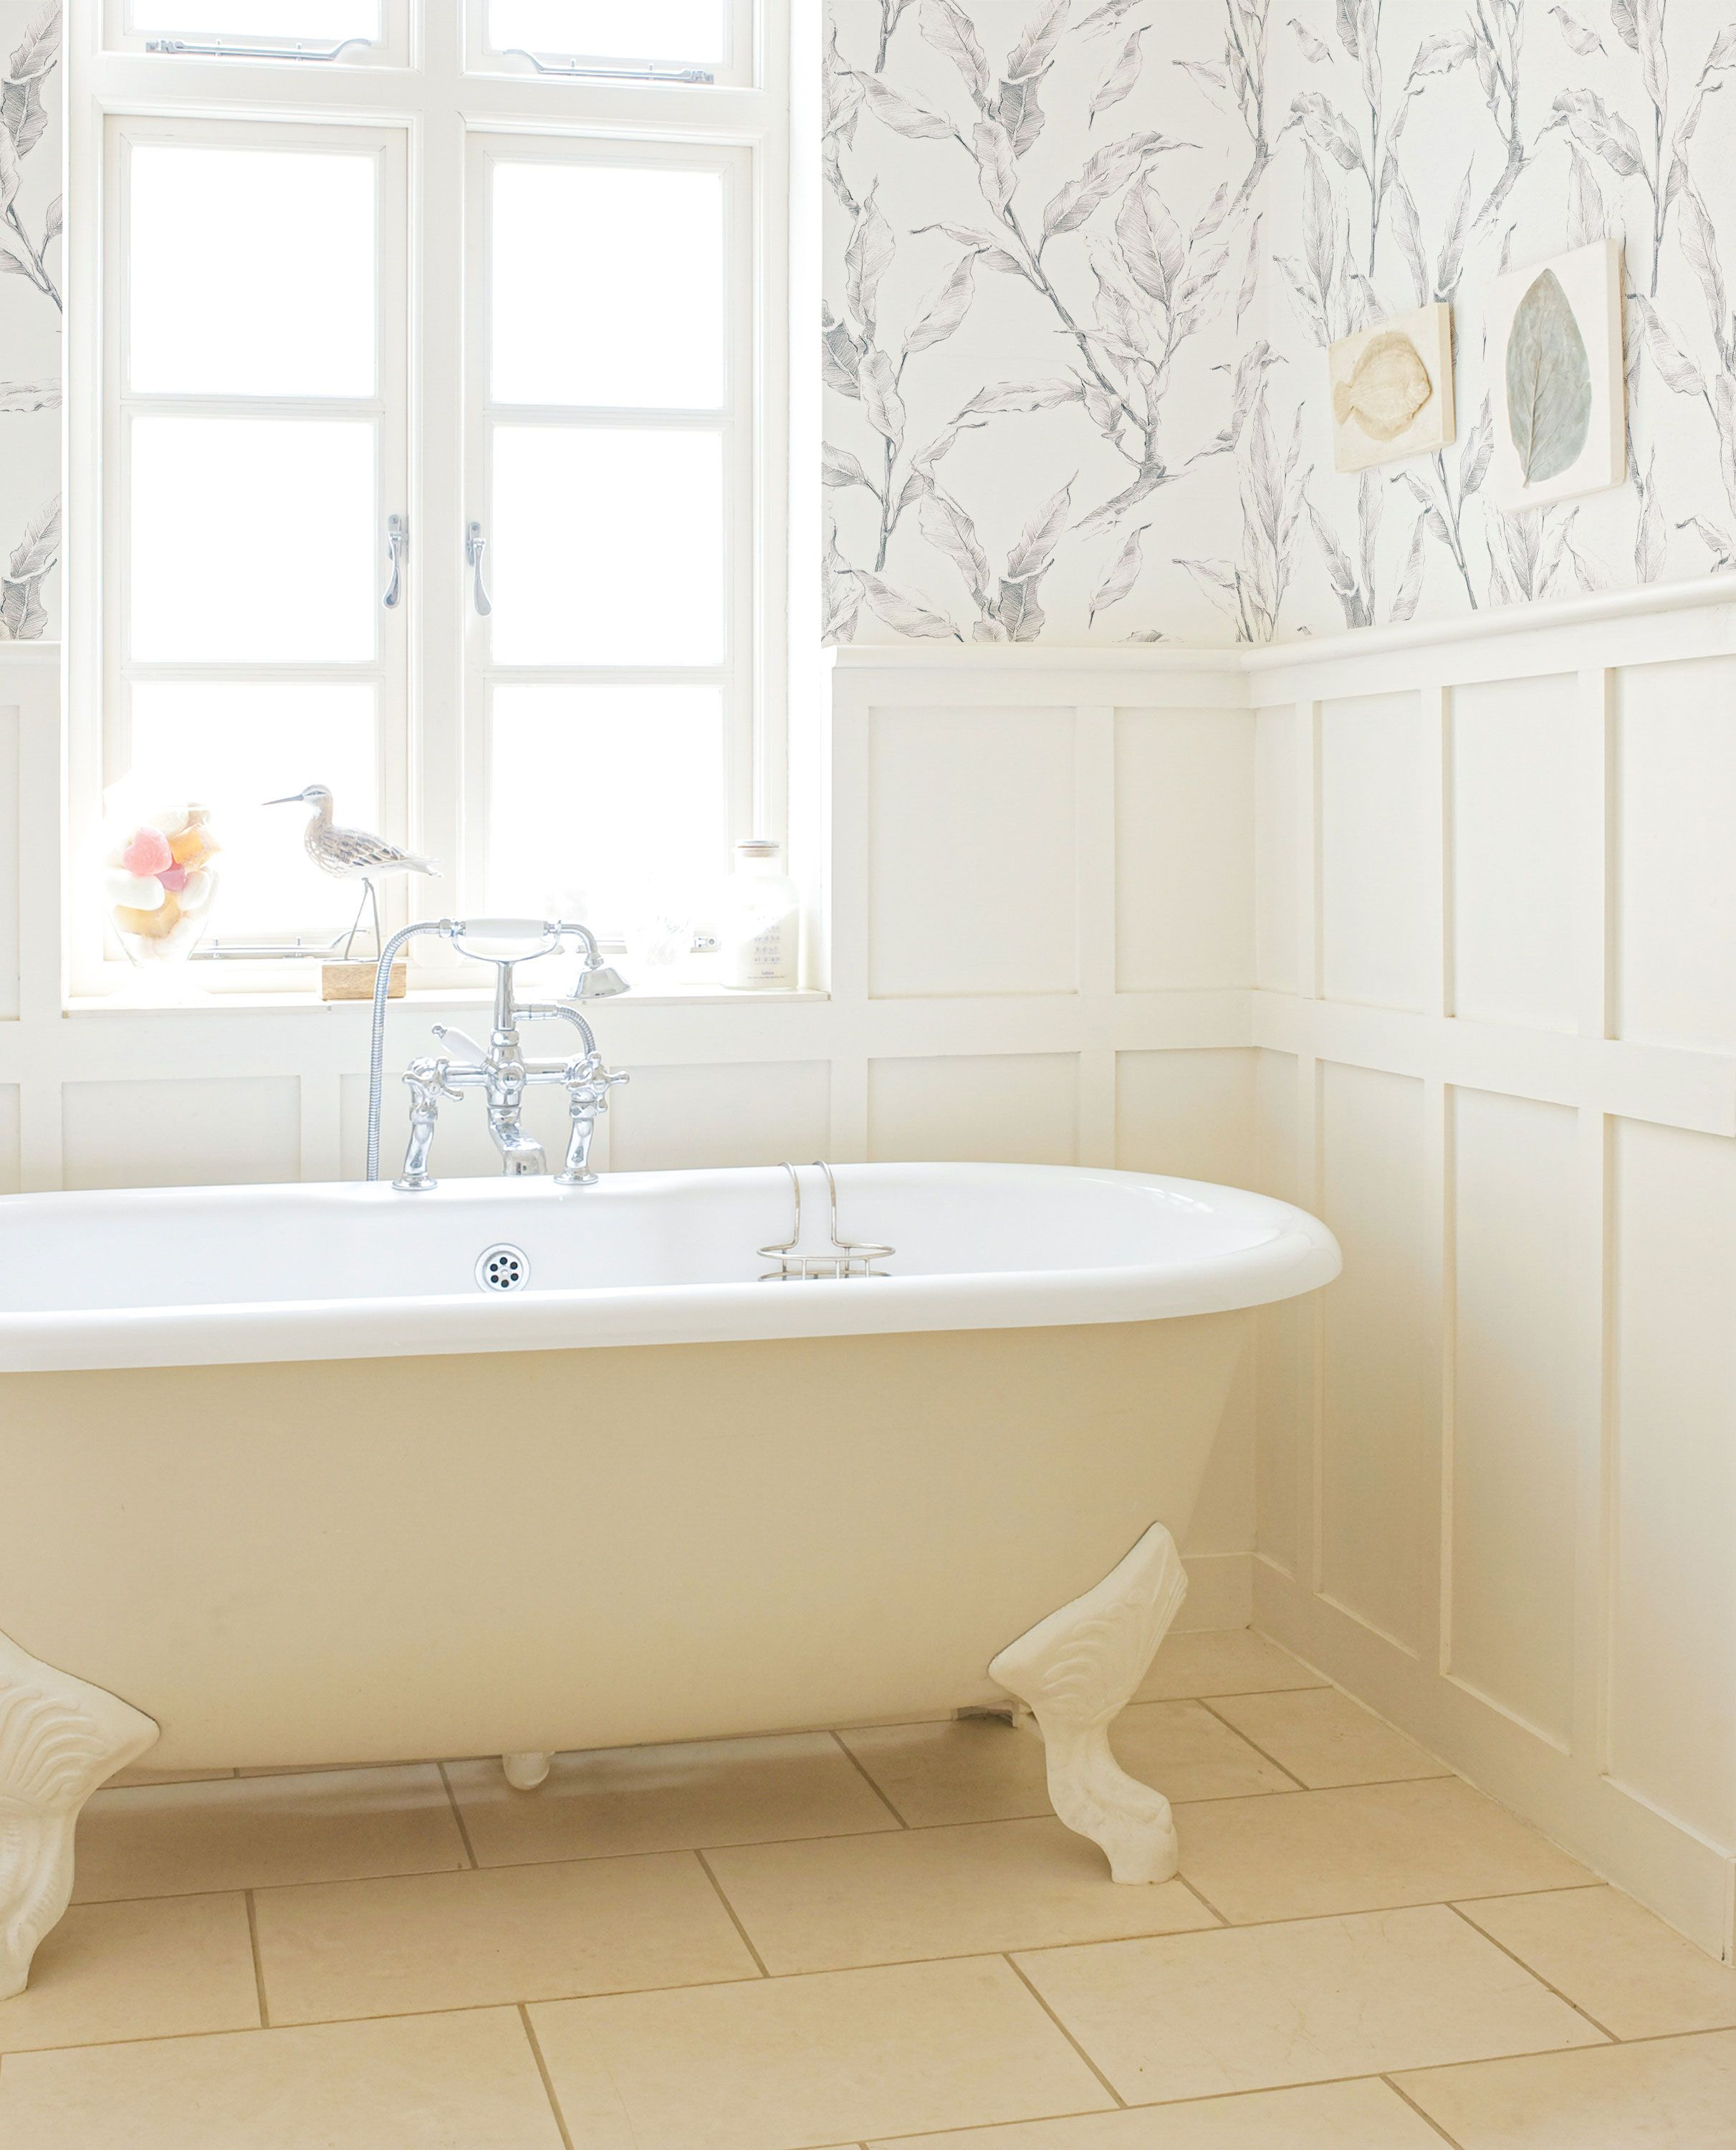 Grey Floral Peel And Stick Removable Wallpaper 4492 Removable Wallpaper Small Bathroom Modern Farmhouse Bathroom